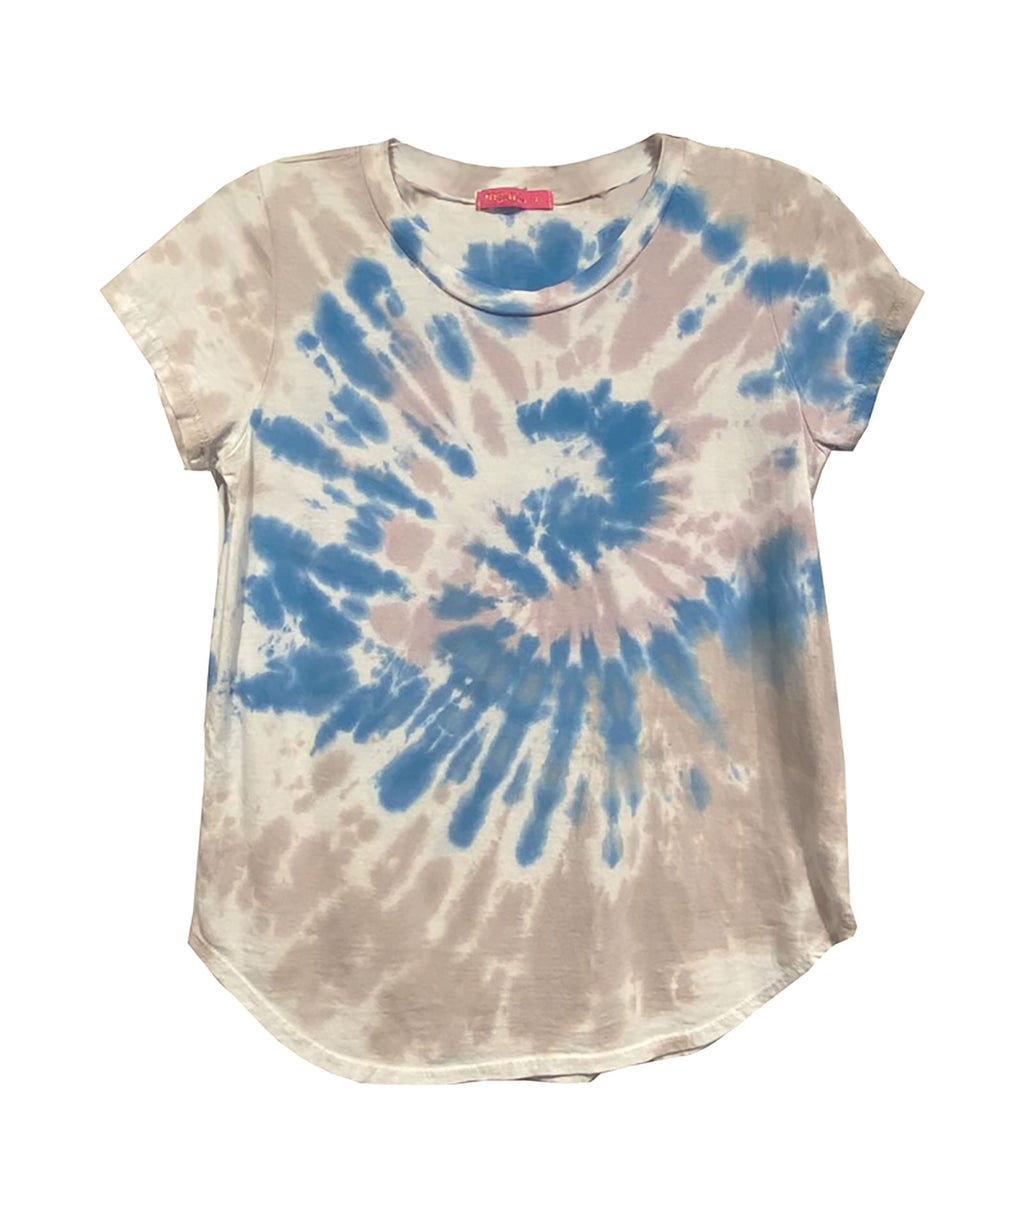 Me.n.u Girls Tie-Dye Natural & Blue Tee